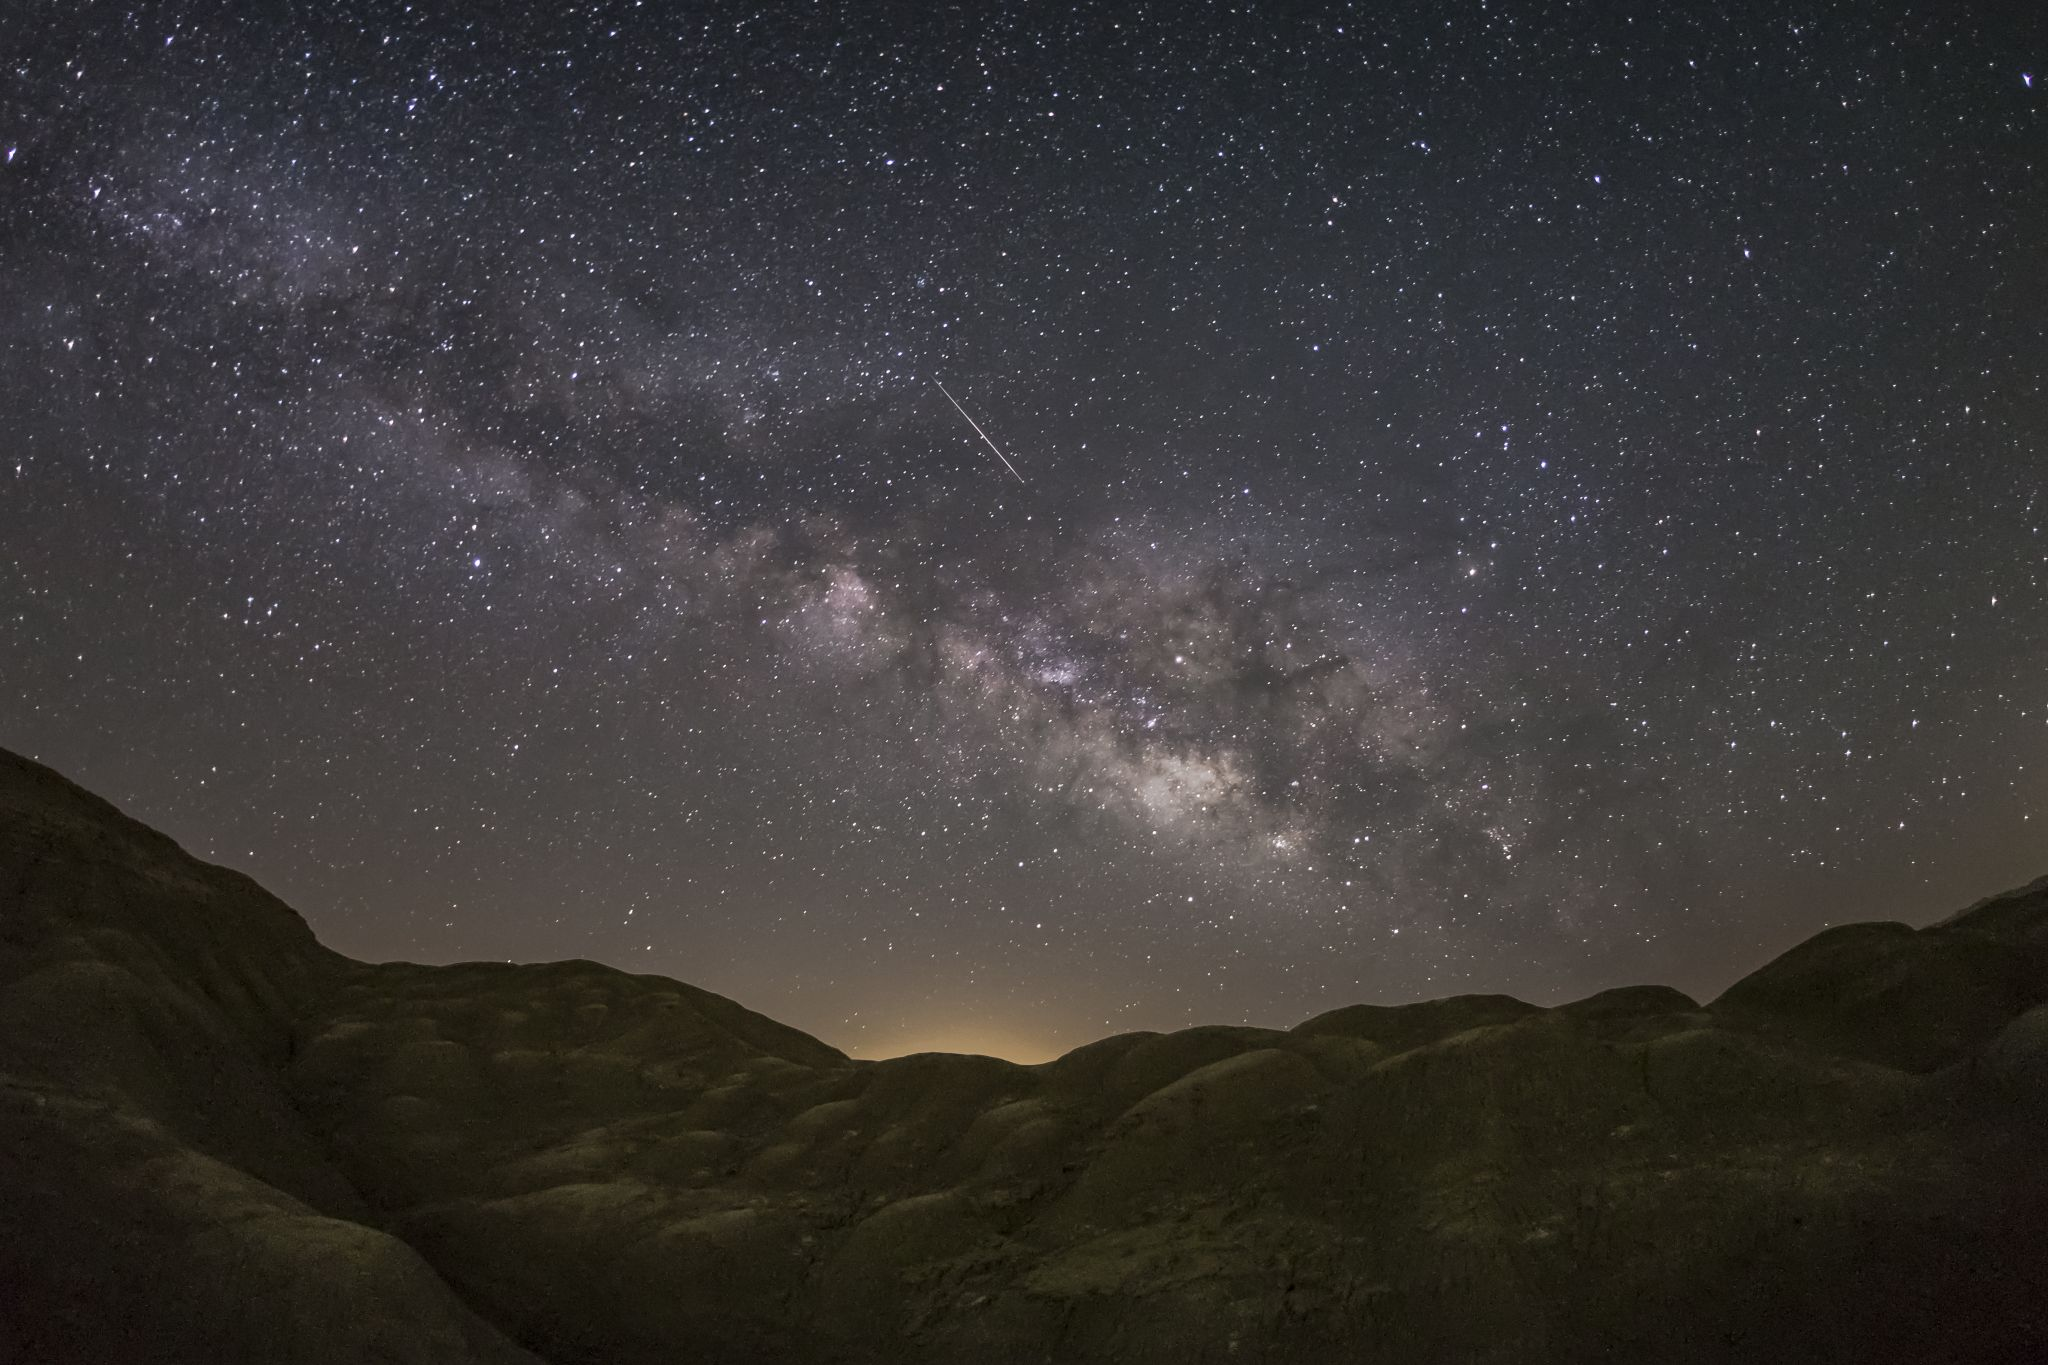 There's still time to catch the Lyrid meteor shower in Bay Area